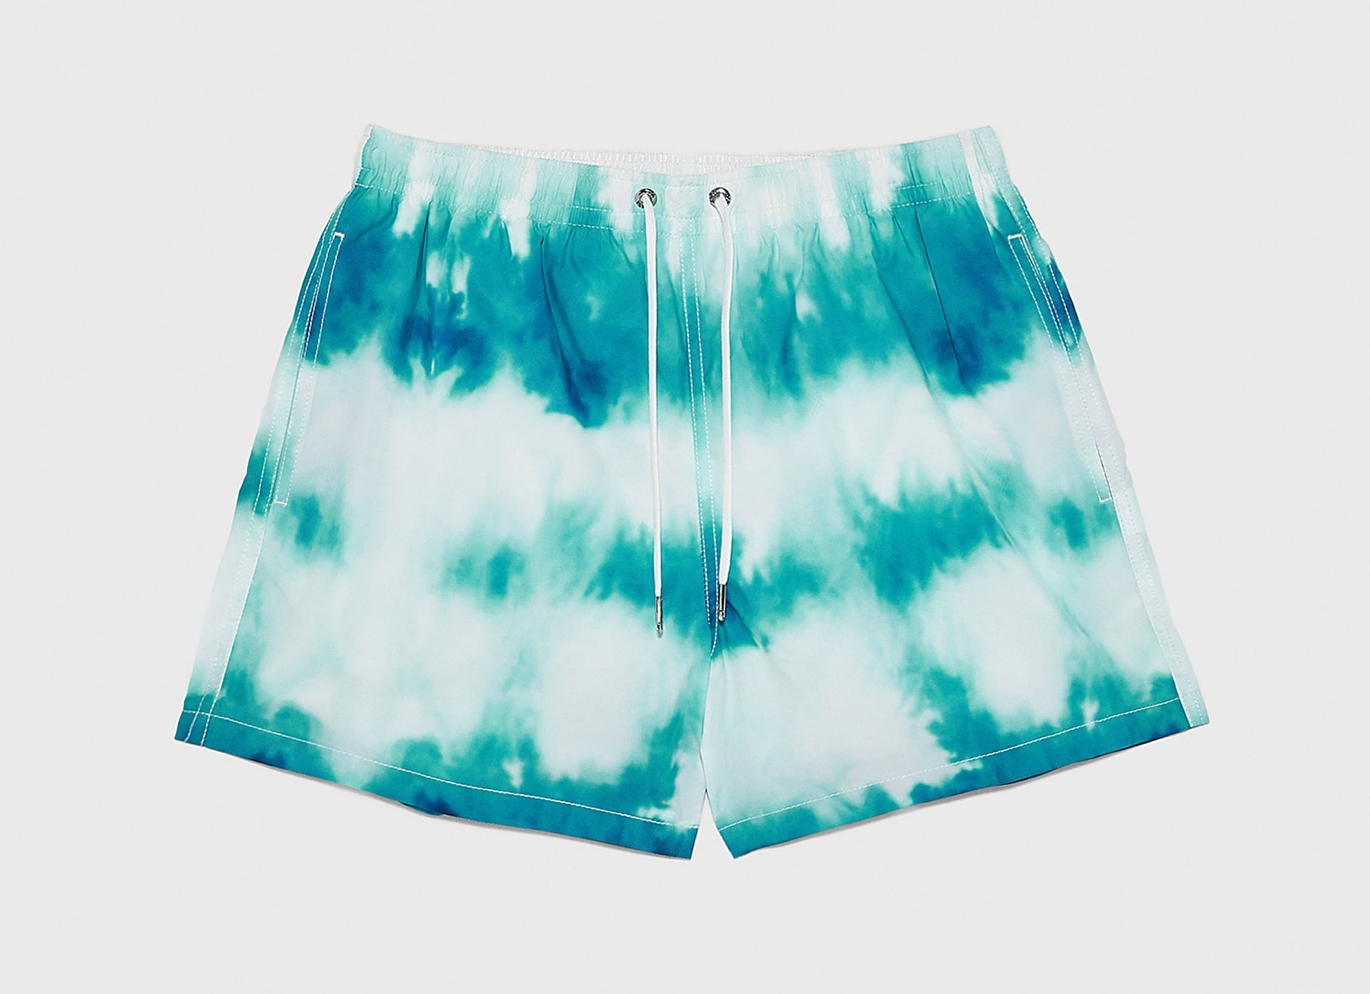 Zara Swim Trunks